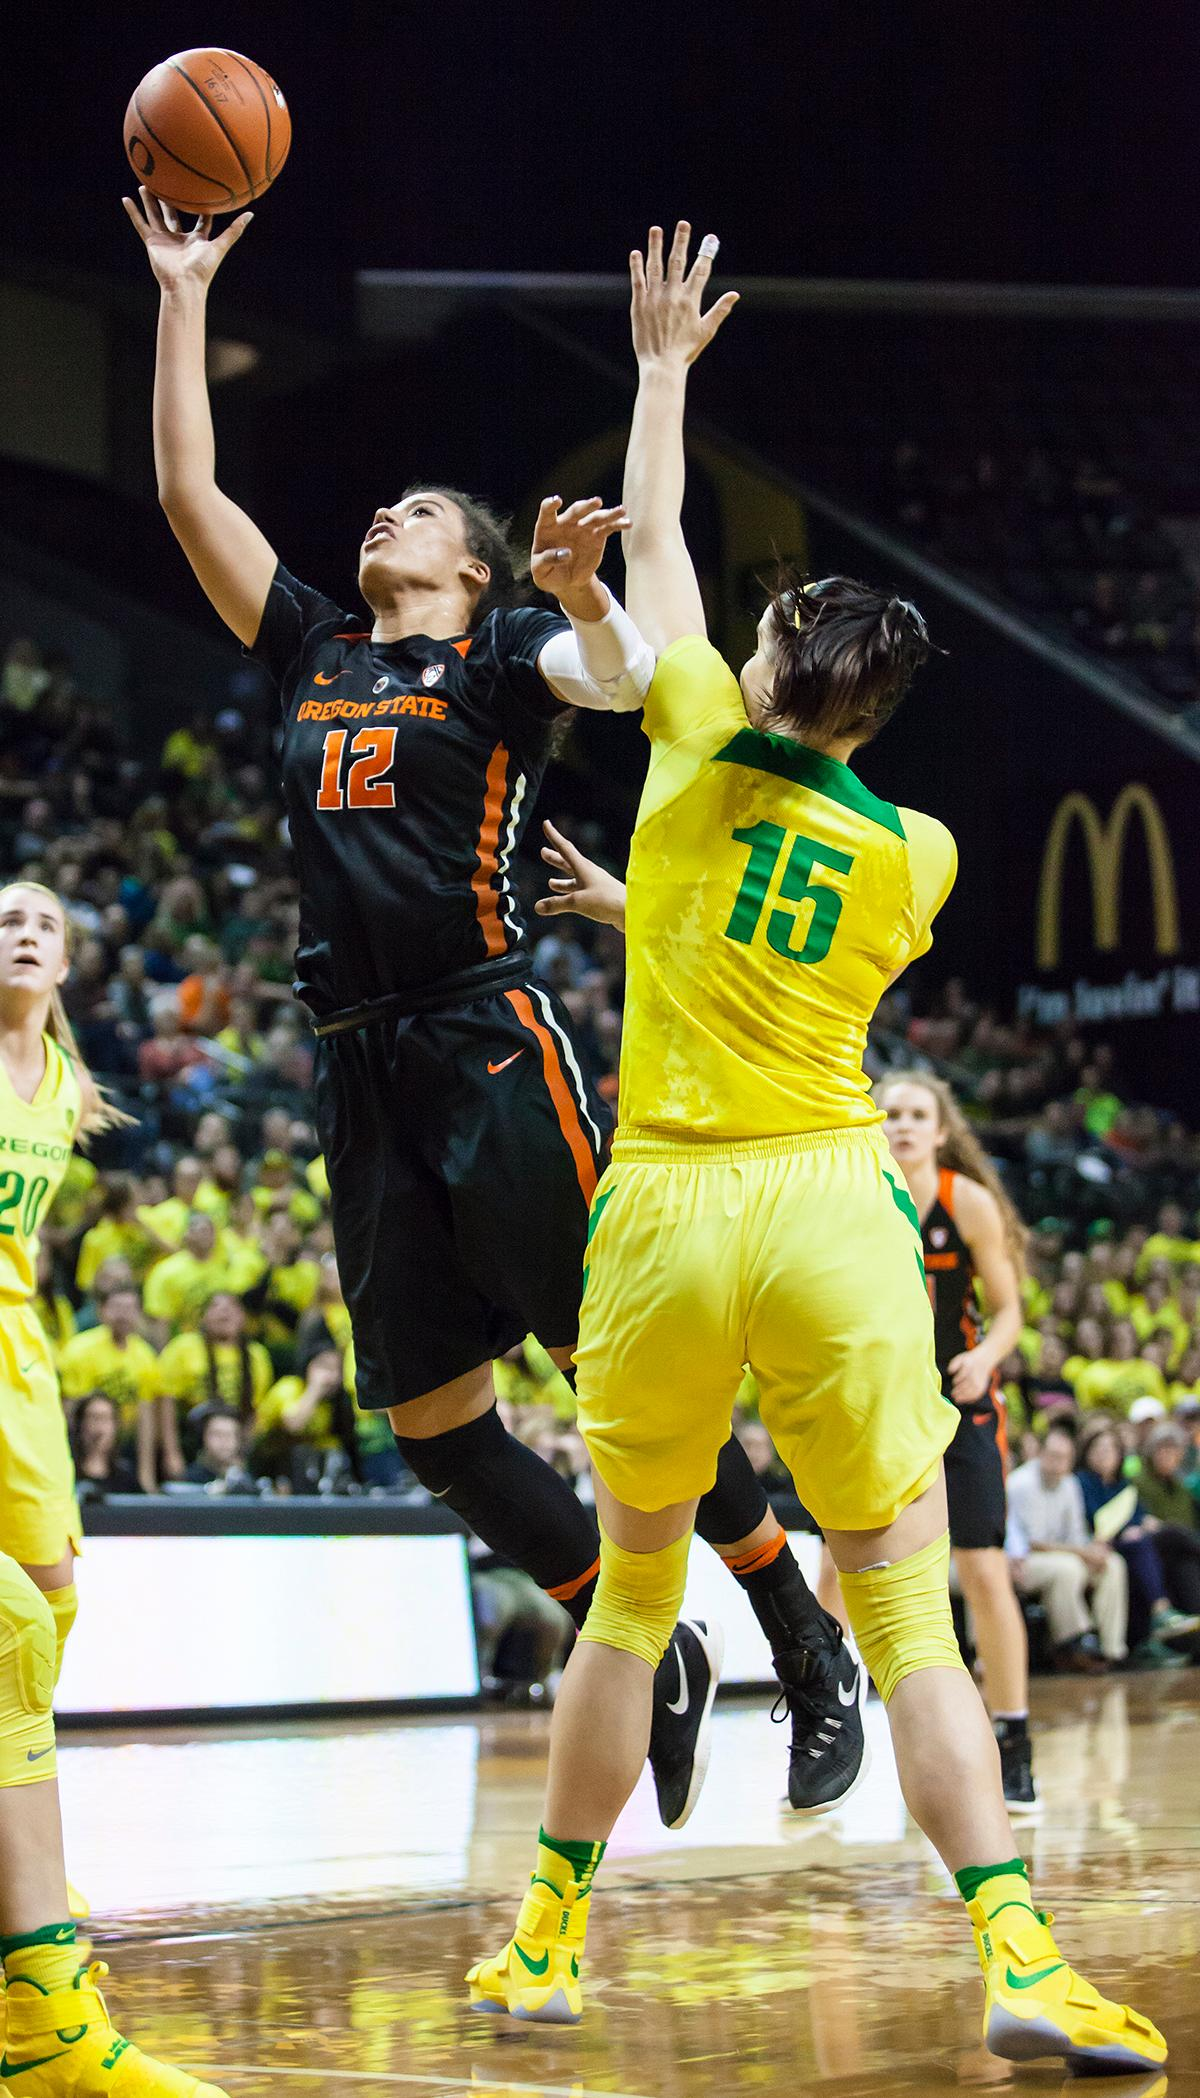 Oregon State forward Kolbie Orum (#12) breaks past Oregon forward Jacinta Vandenberg (#15) and leaps for a layup. Orum finished the night with 9 points and 4 rebounds. The Oregon Ducks lost 40 to 43 against the Oregon State Beavers after a tightly matched 4th quarter. Photo by Ben Lonergan, Oregon News Lab